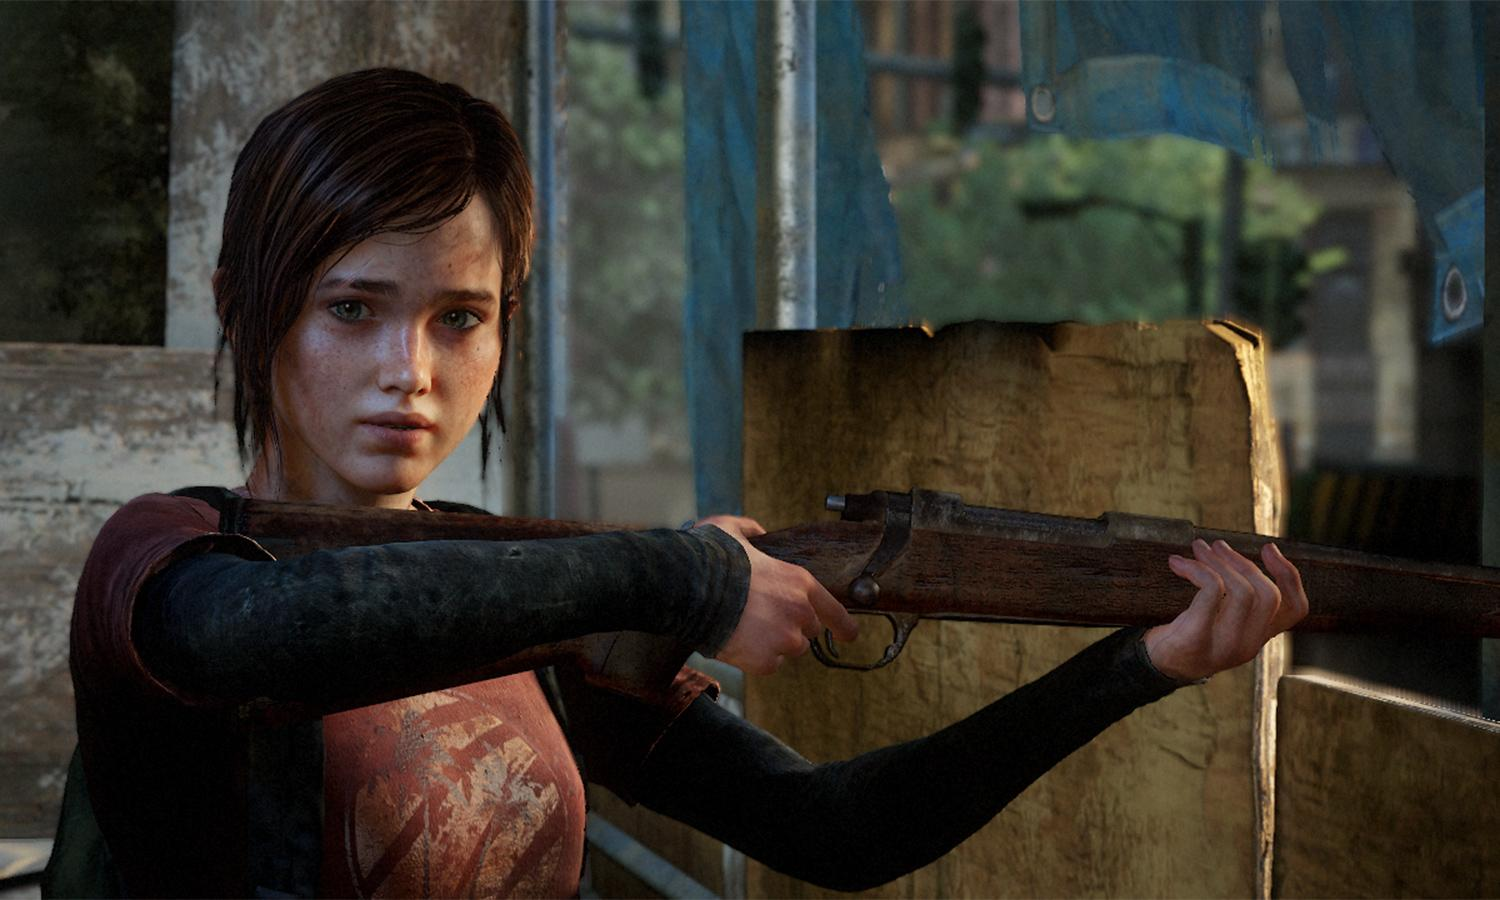 The Last Of Us Ellie Wallpaper Hdthe Last Of Us Review Digital Trends 1500x900